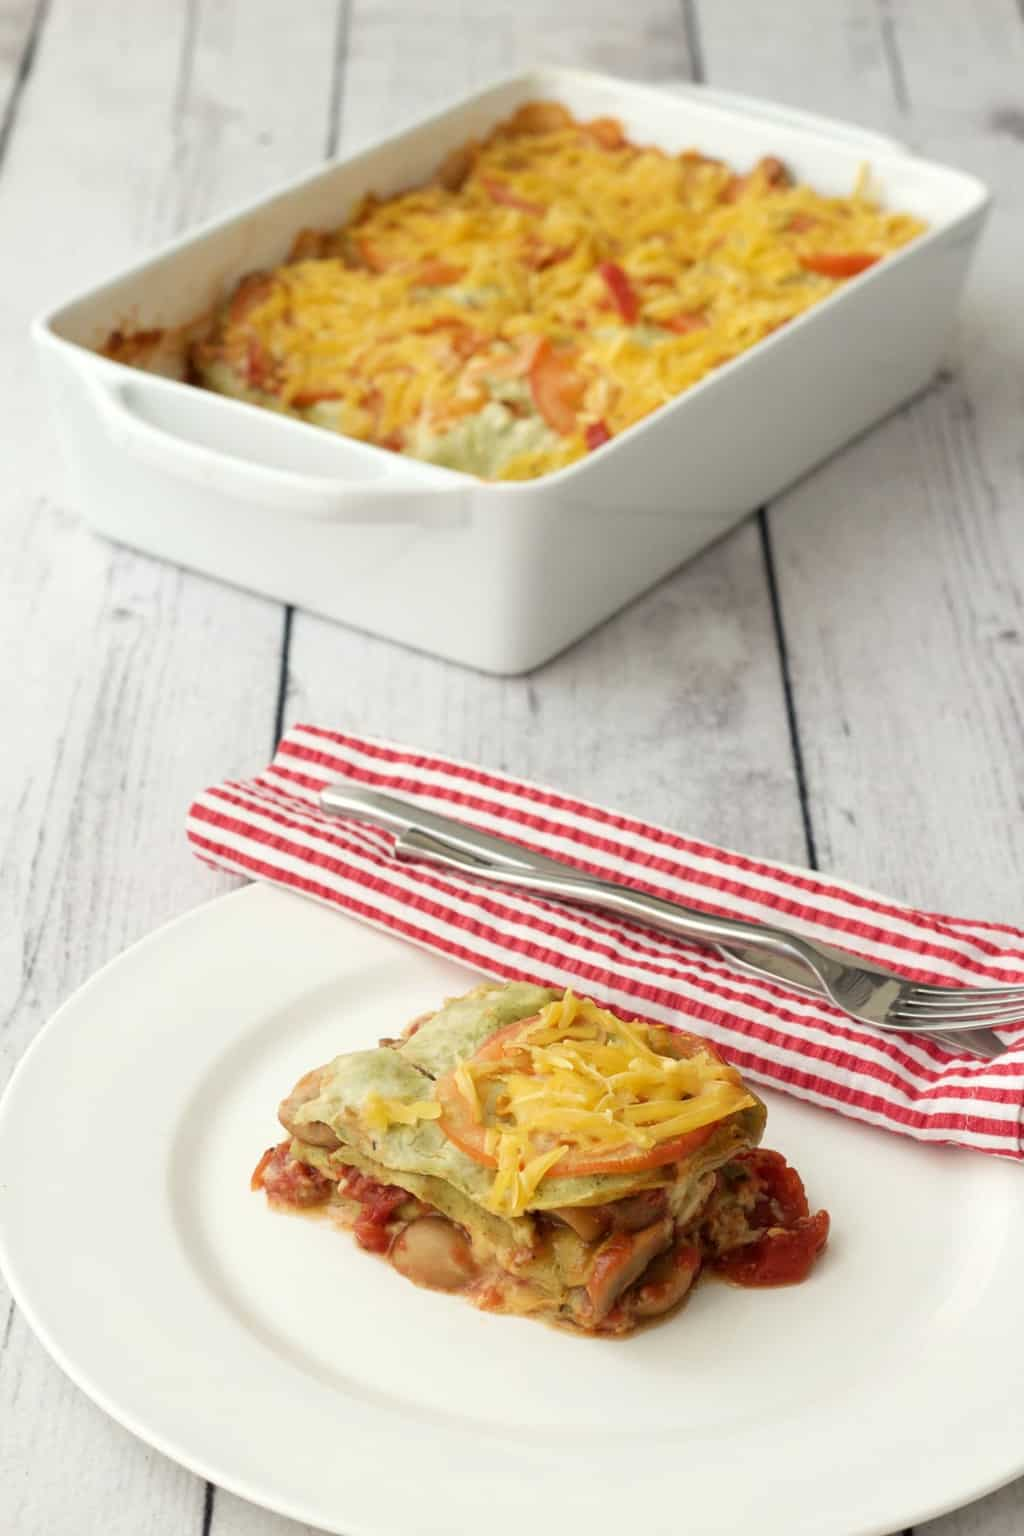 http://lovingitvegan.com/the-easiest-vegan-lasagna/